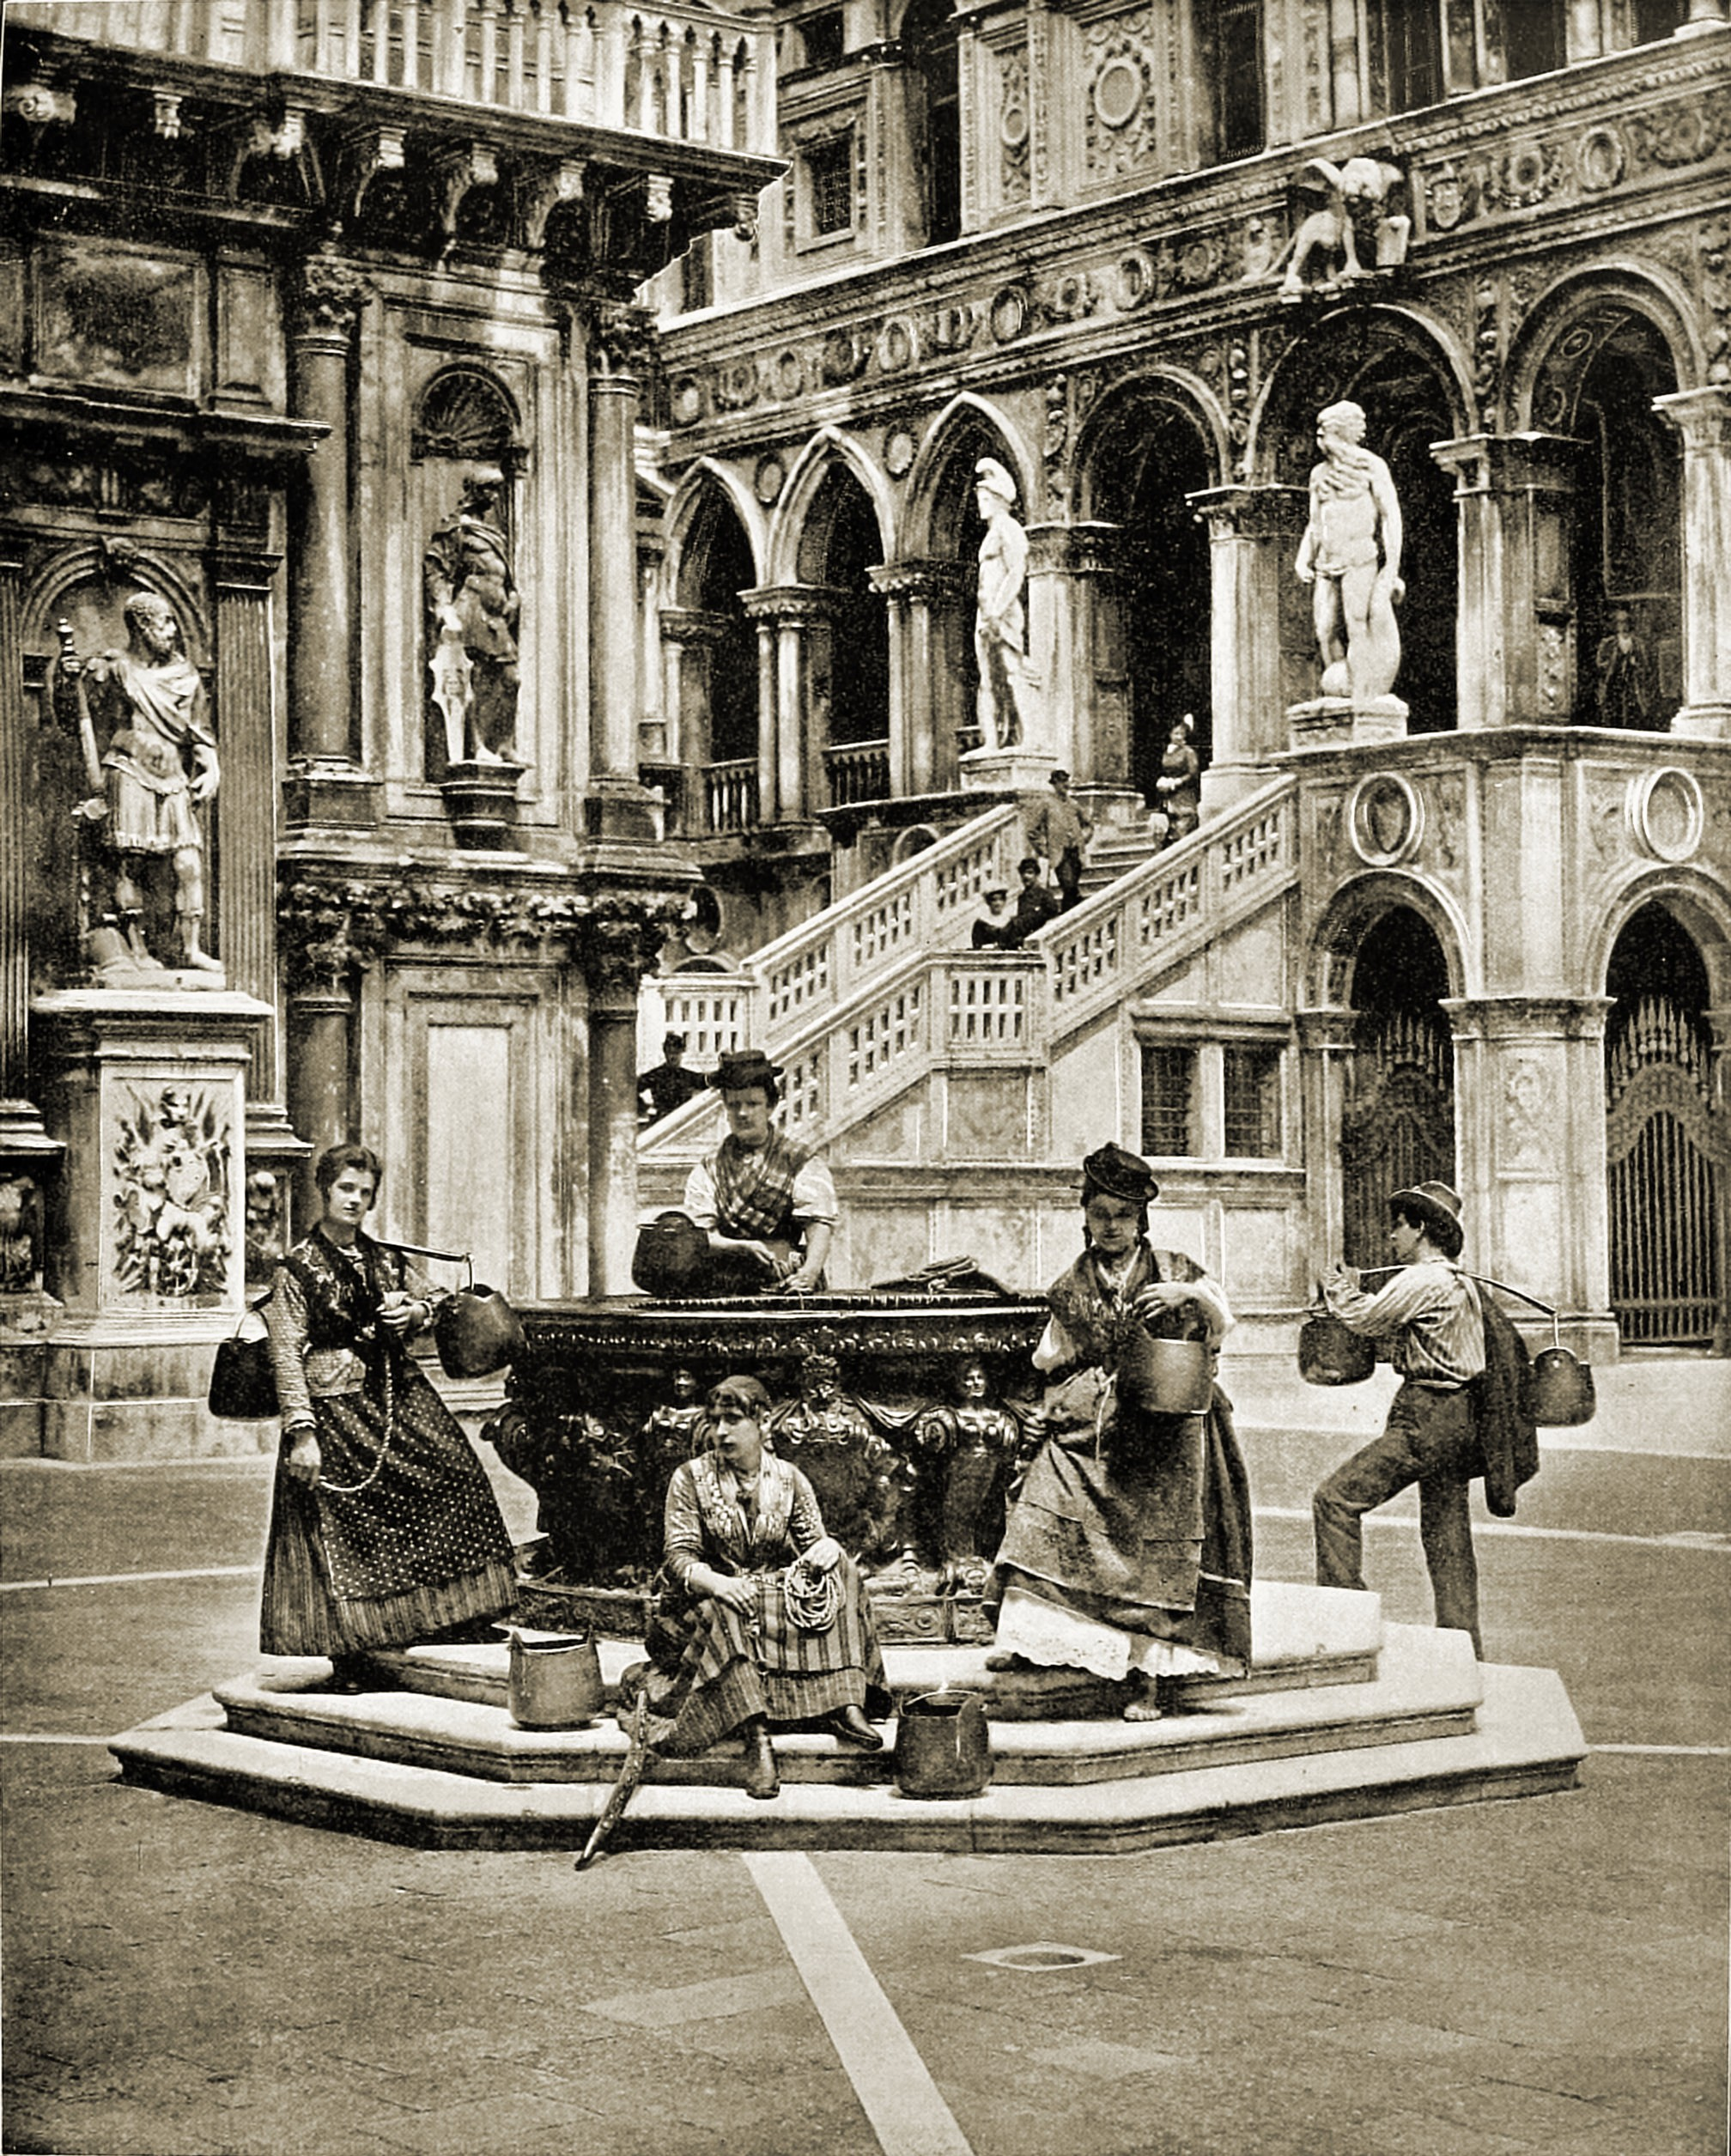 Ducal Palace Courtyard Venice Italy about 1892